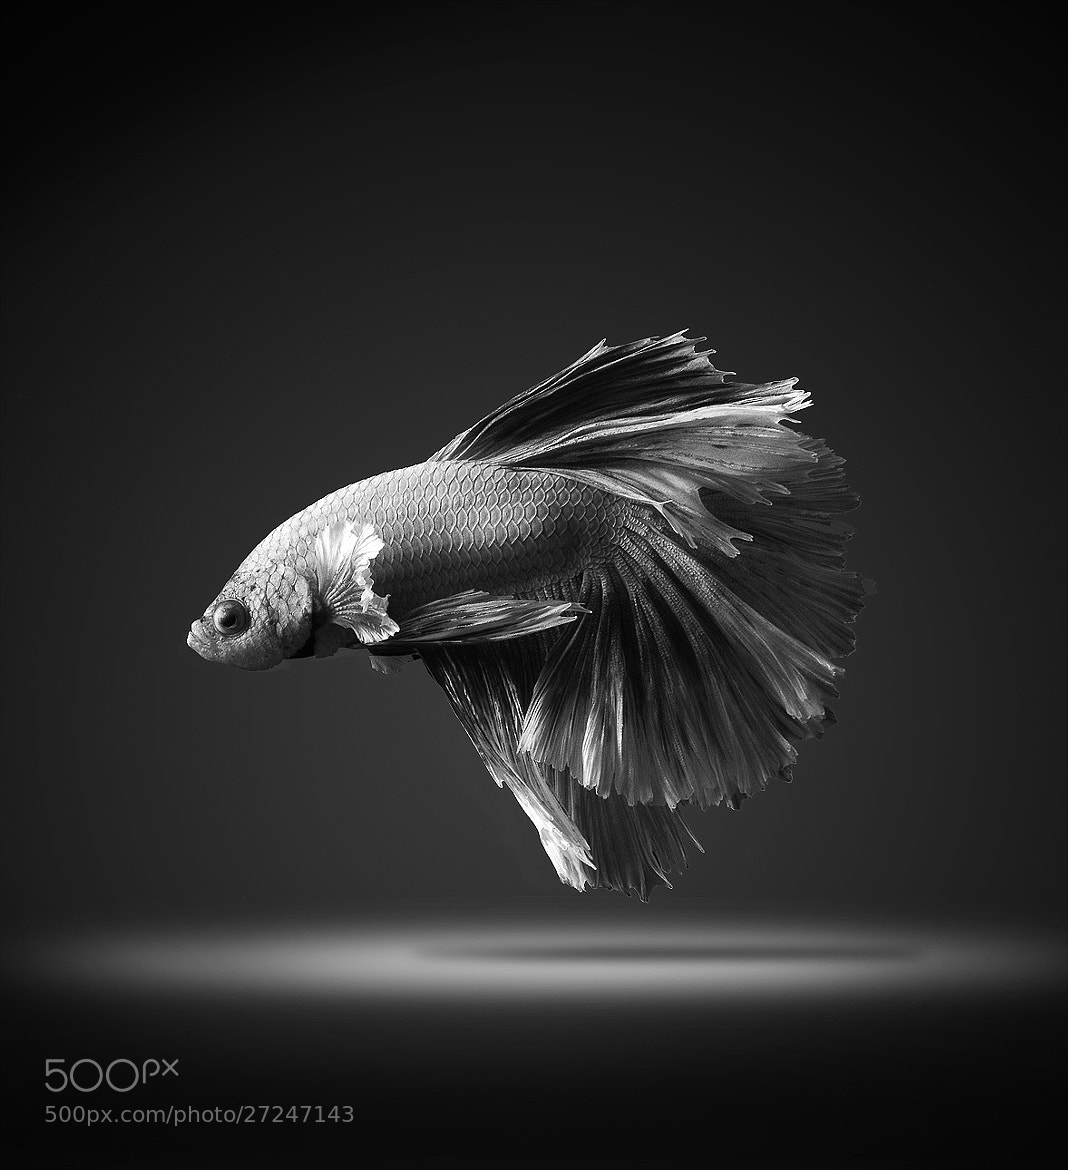 Photograph on stage by visarute angkatavanich on 500px